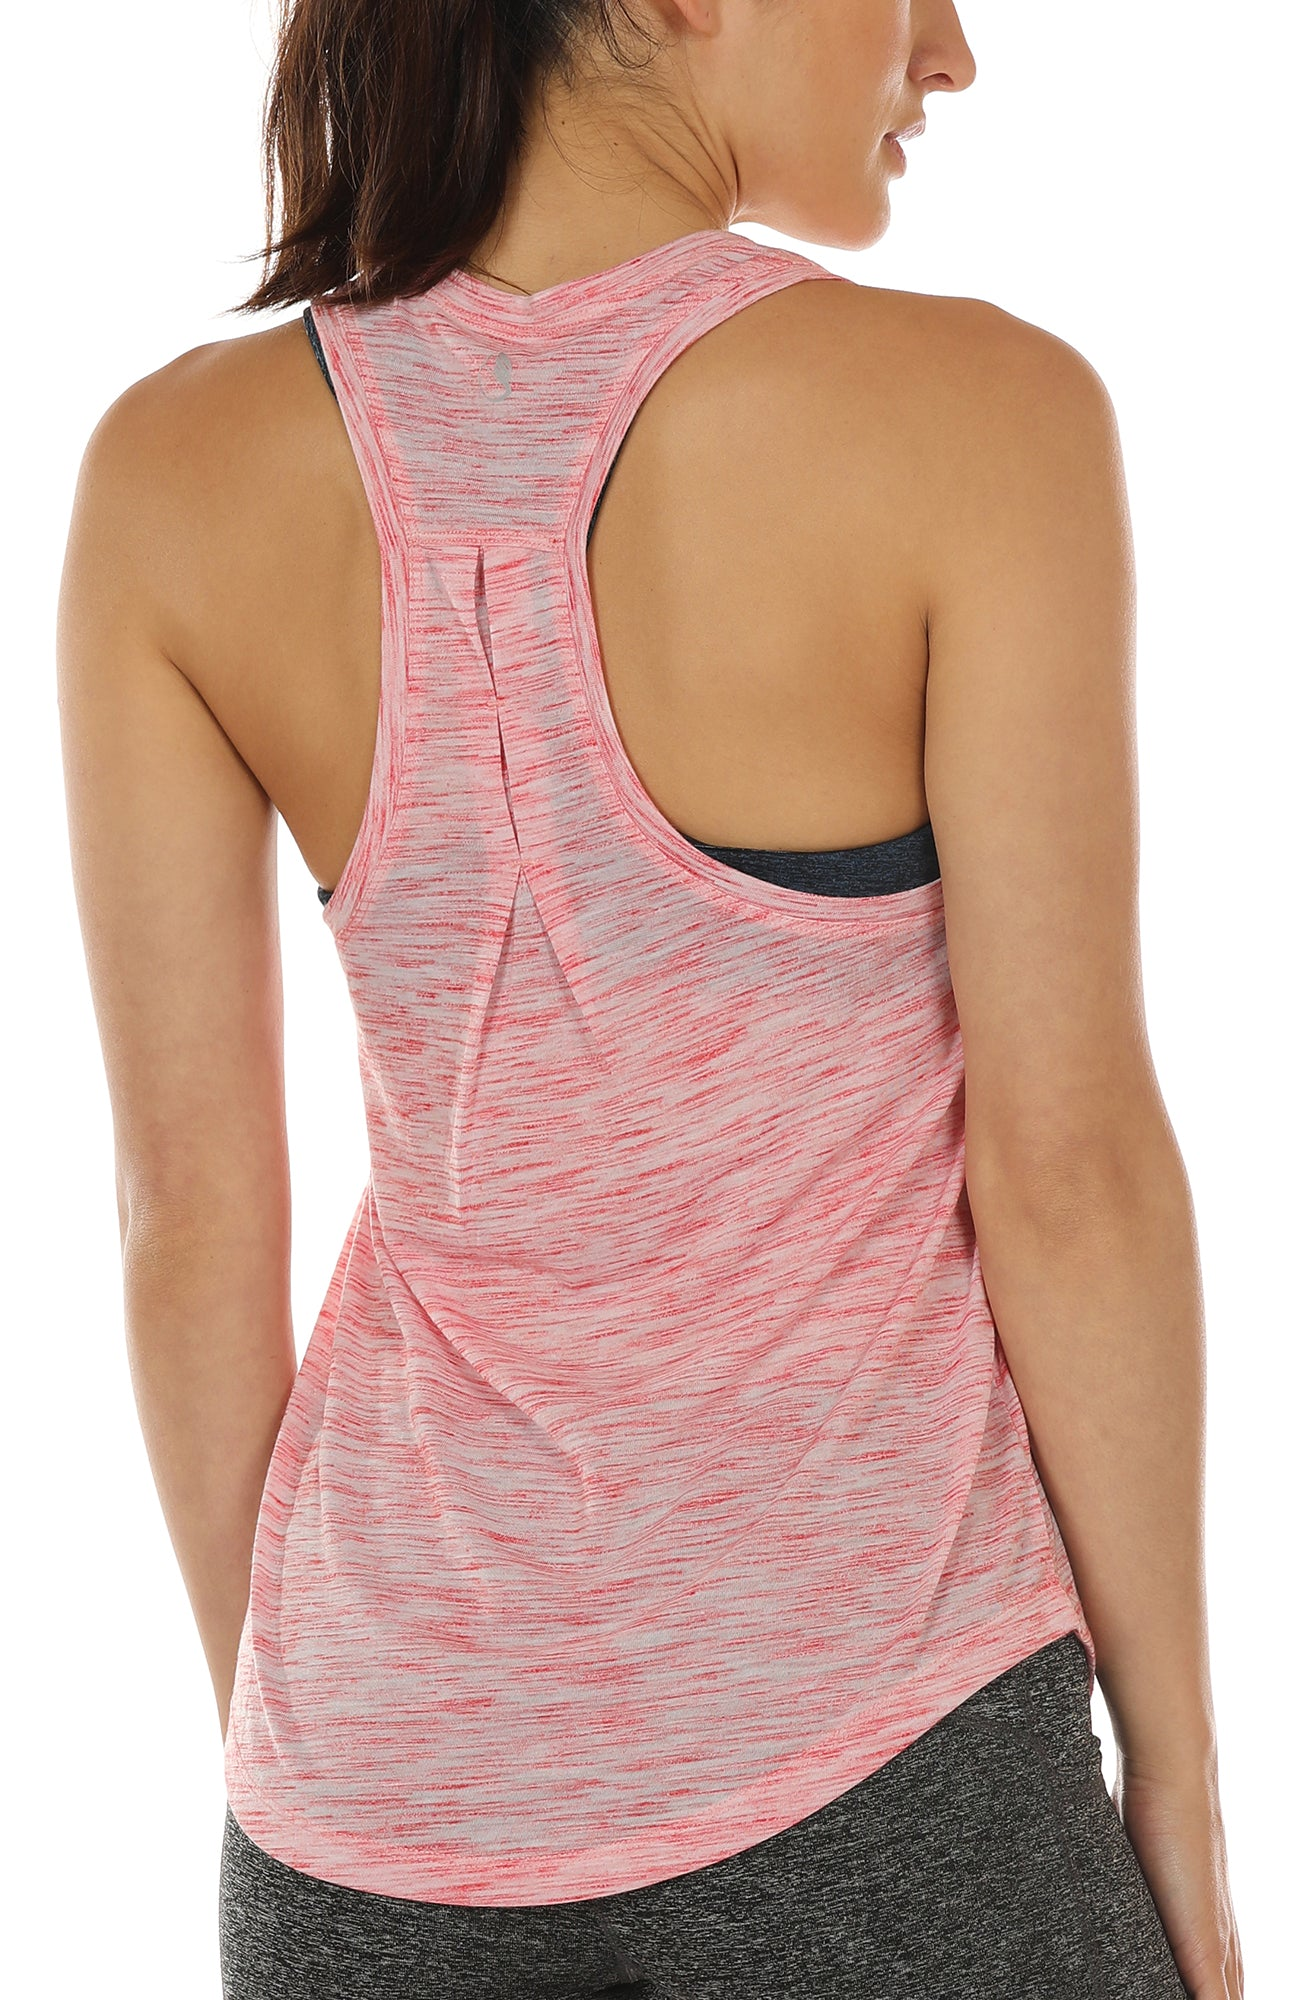 pretty nice 9cbb8 f157d icyzone Workout Tank Tops for Women - Athletic Yoga Tops, Racerback ...